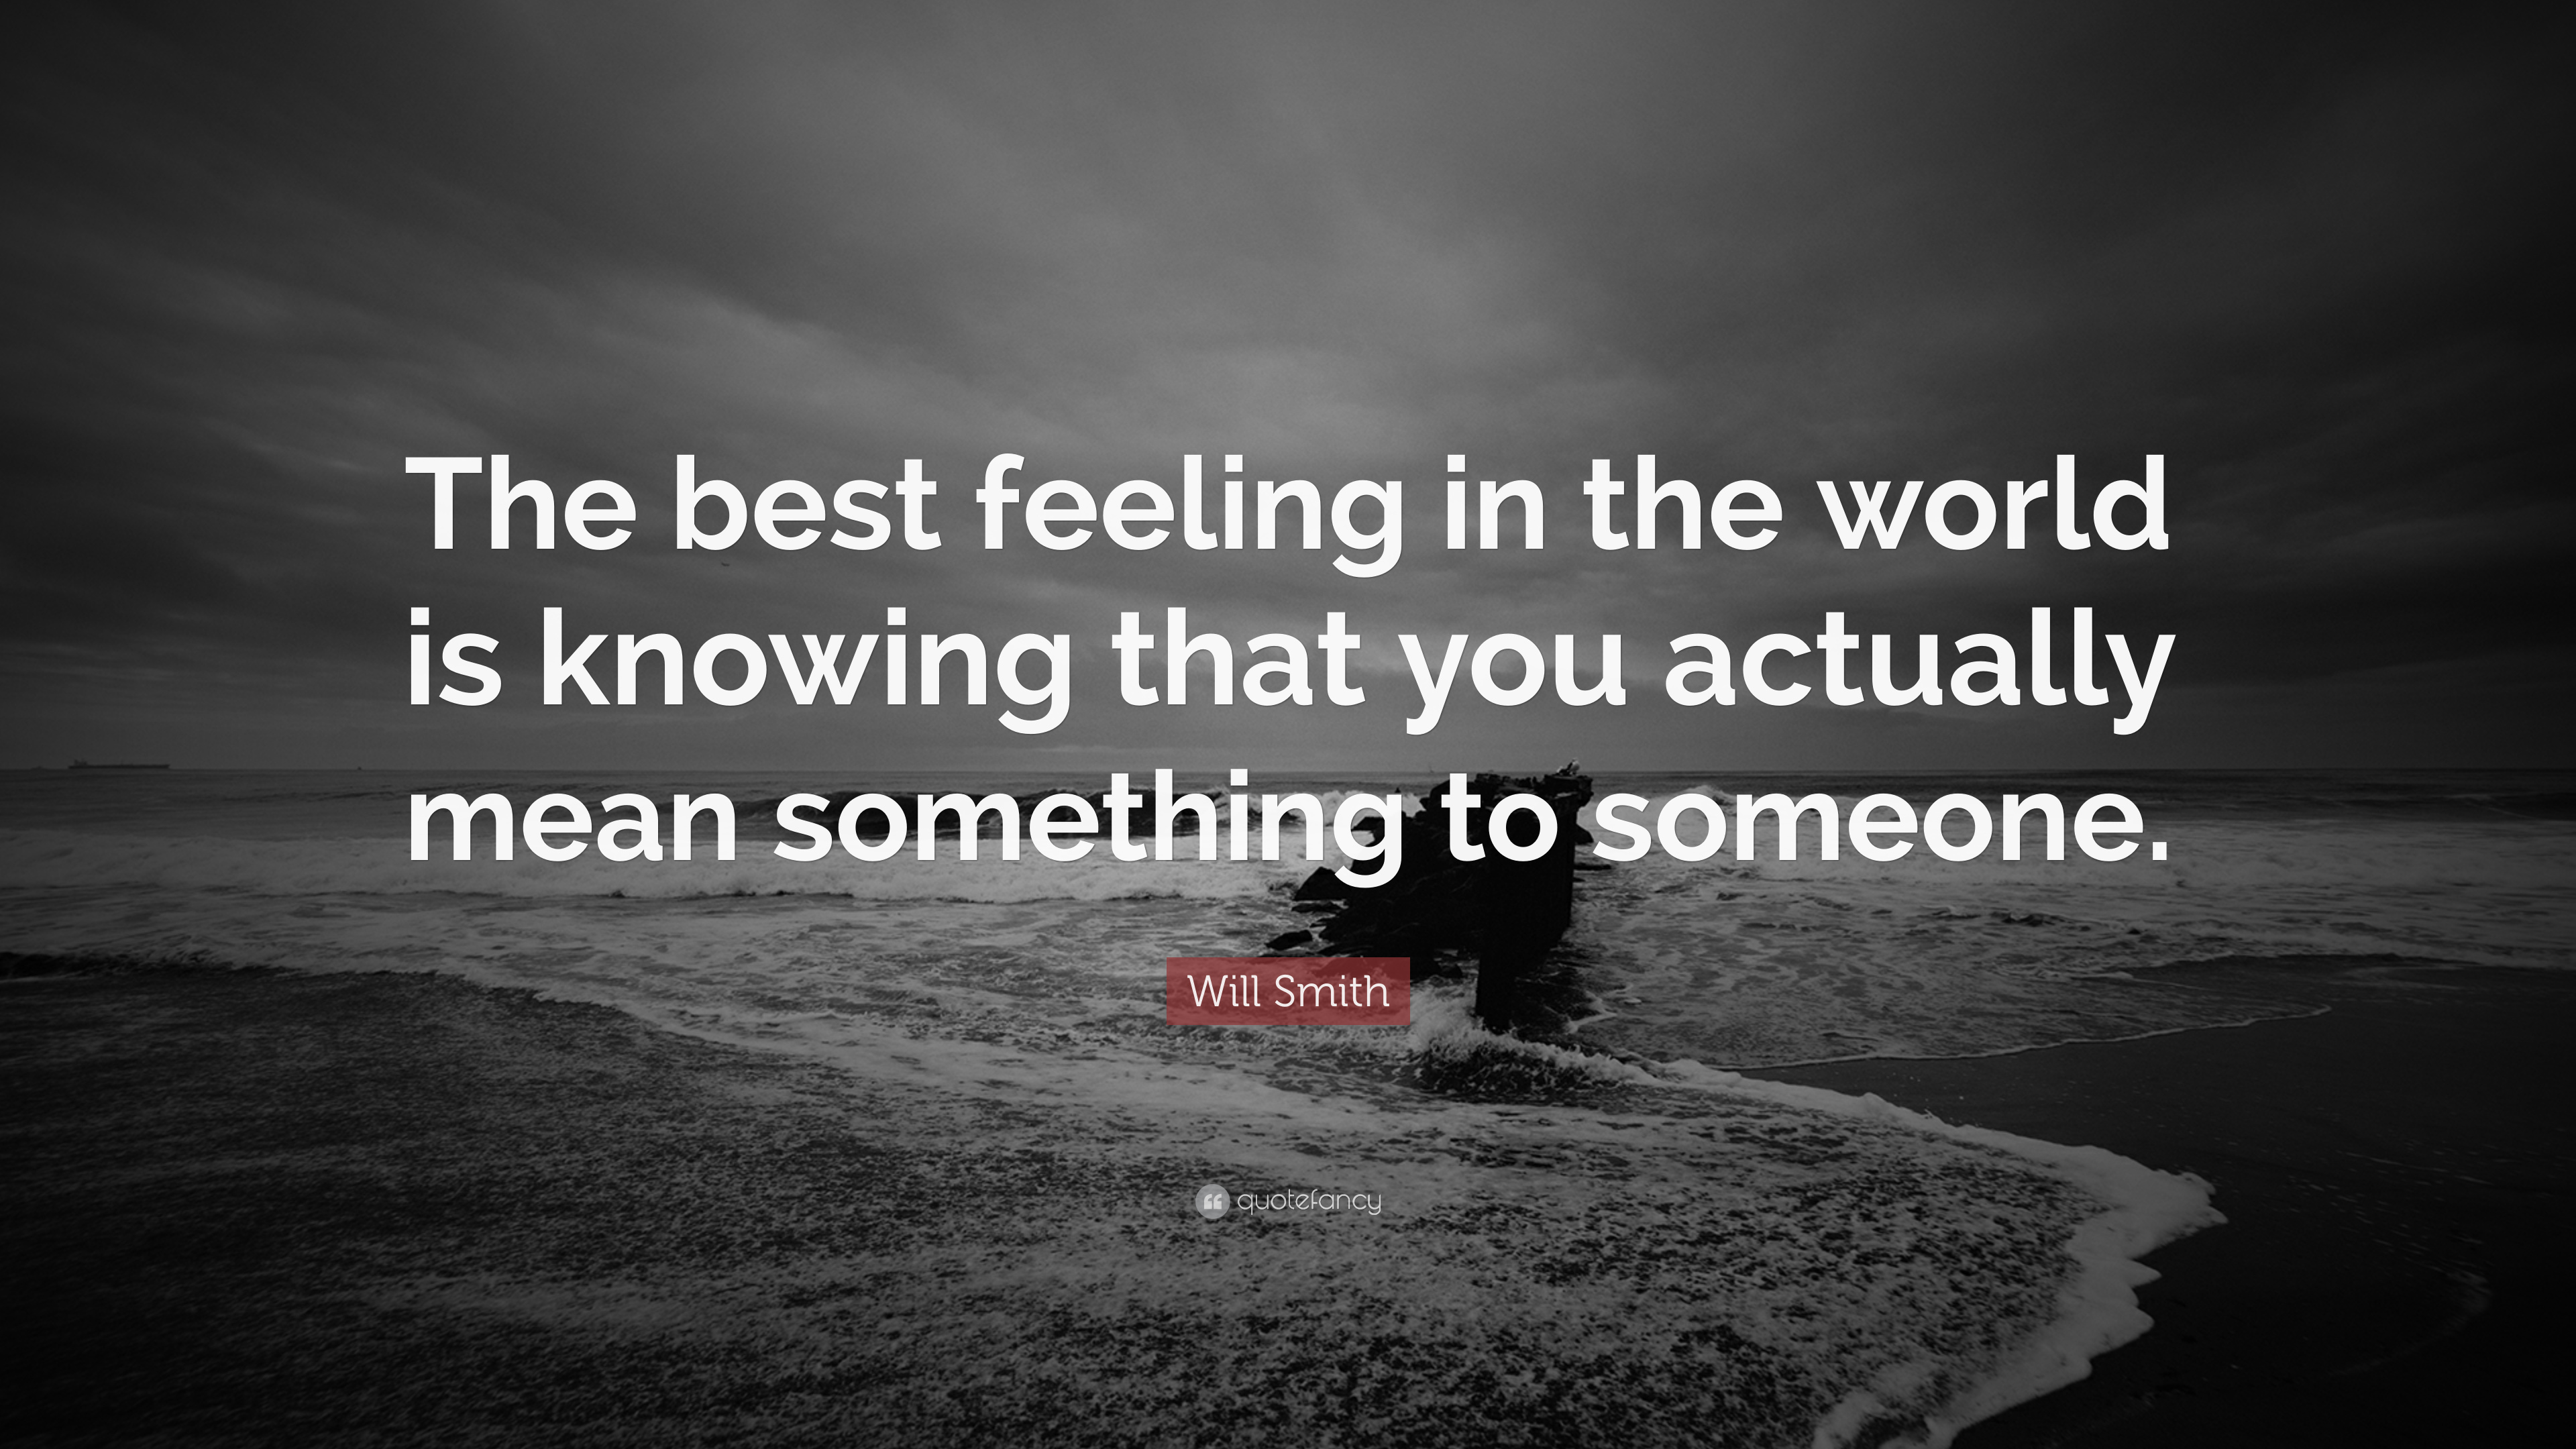 Will Smith Quote The Best Feeling In The World Is Knowing That You Actually Mean Something To Someone 12 Wallpapers Quotefancy